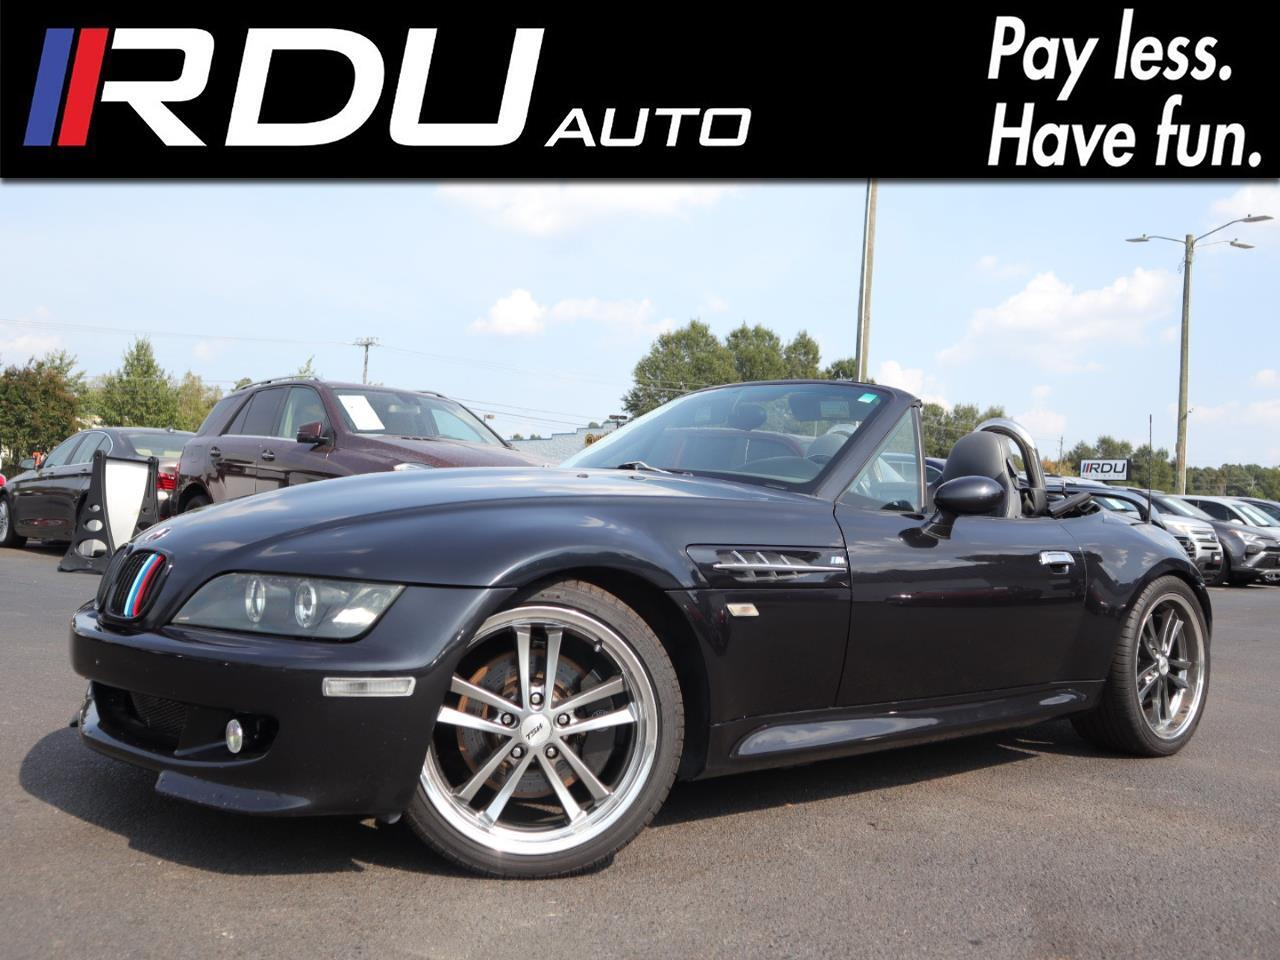 2000 BMW M Roadster Supercharged